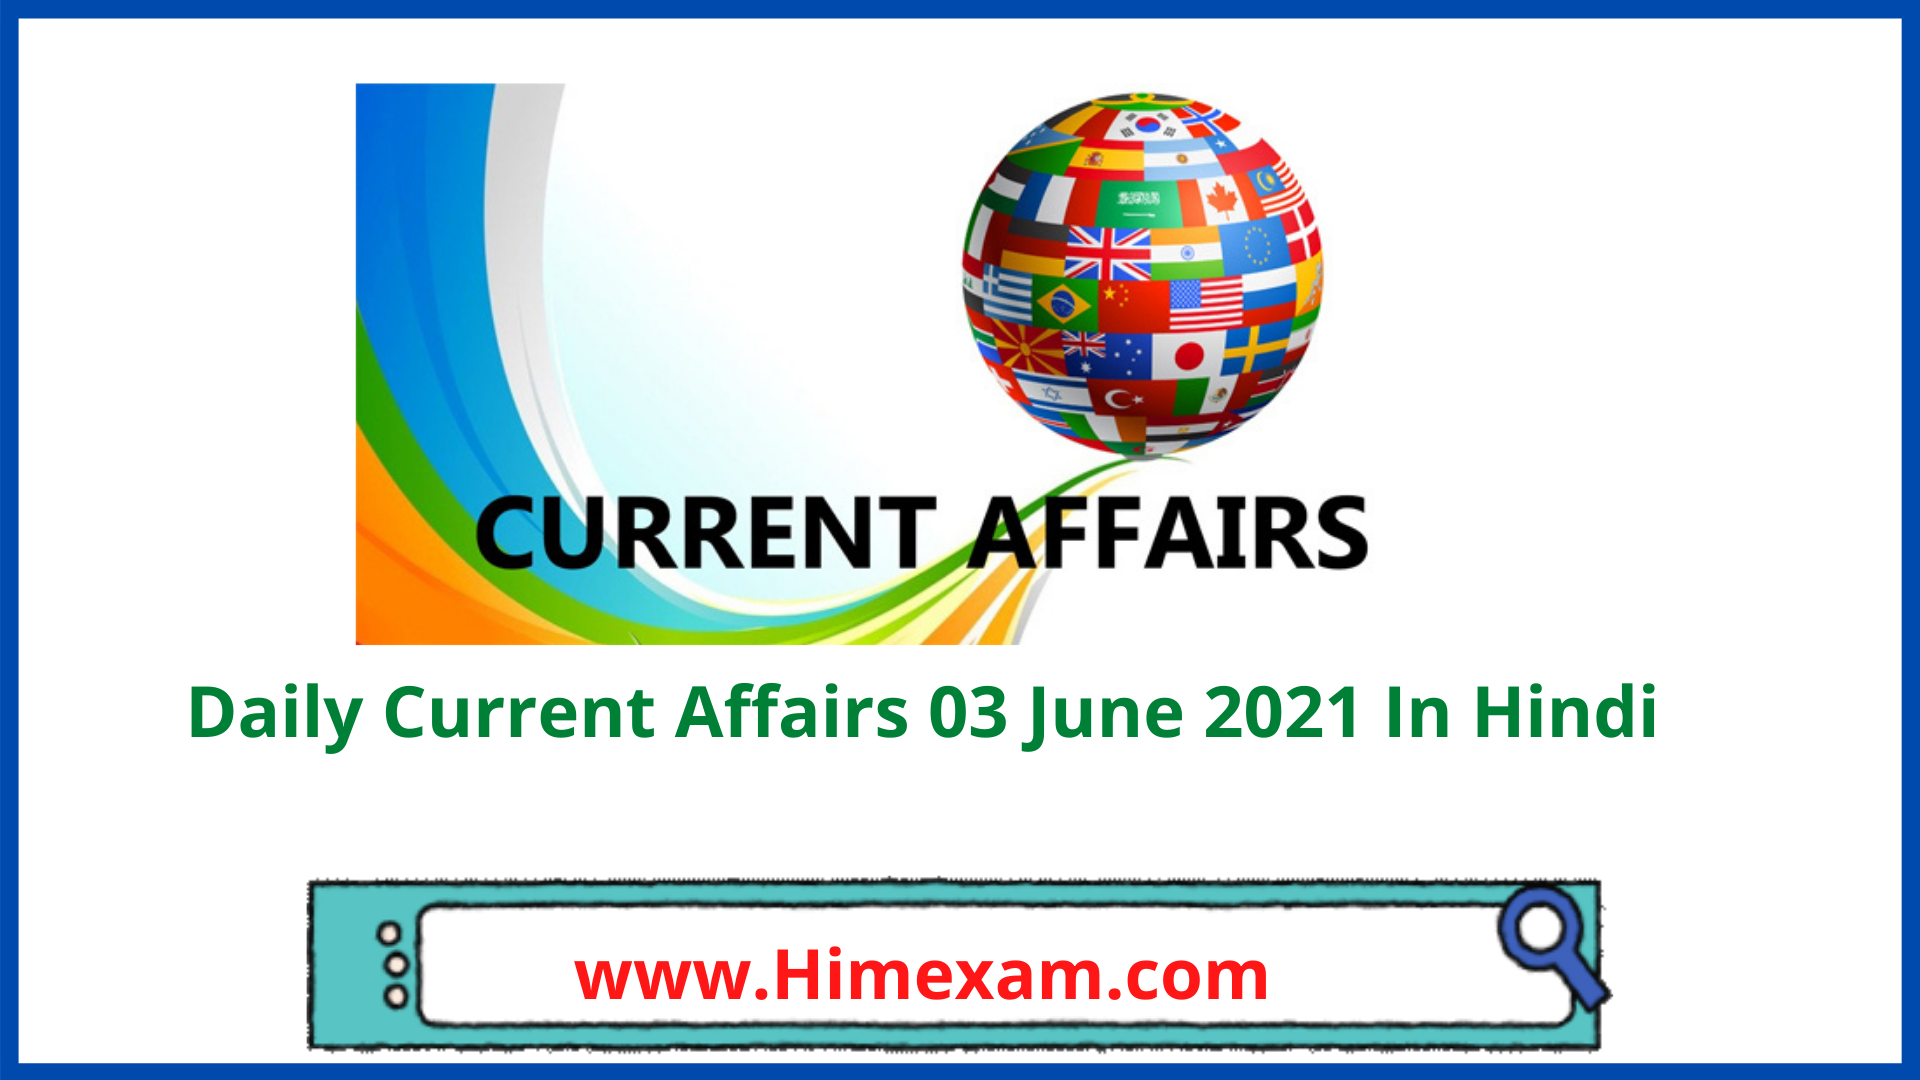 Daily Current Affairs 03 June 2021 In Hindi